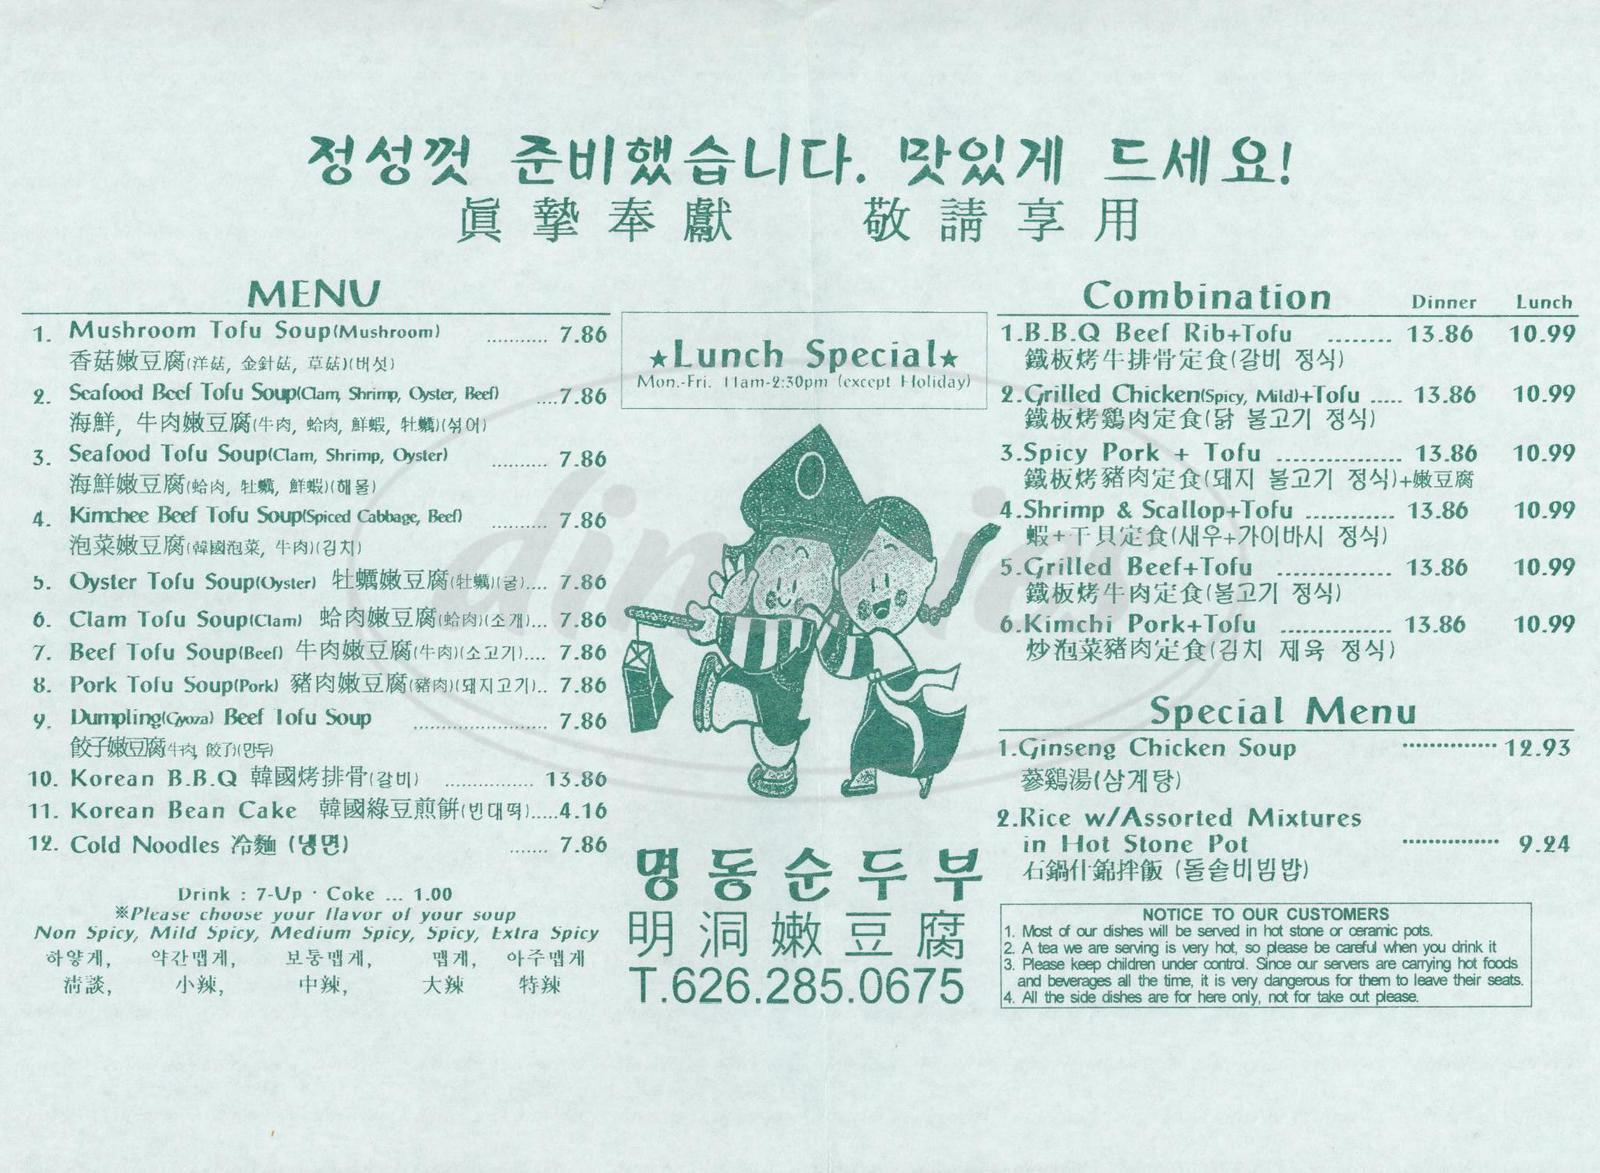 menu for Myoung Dong Tofu